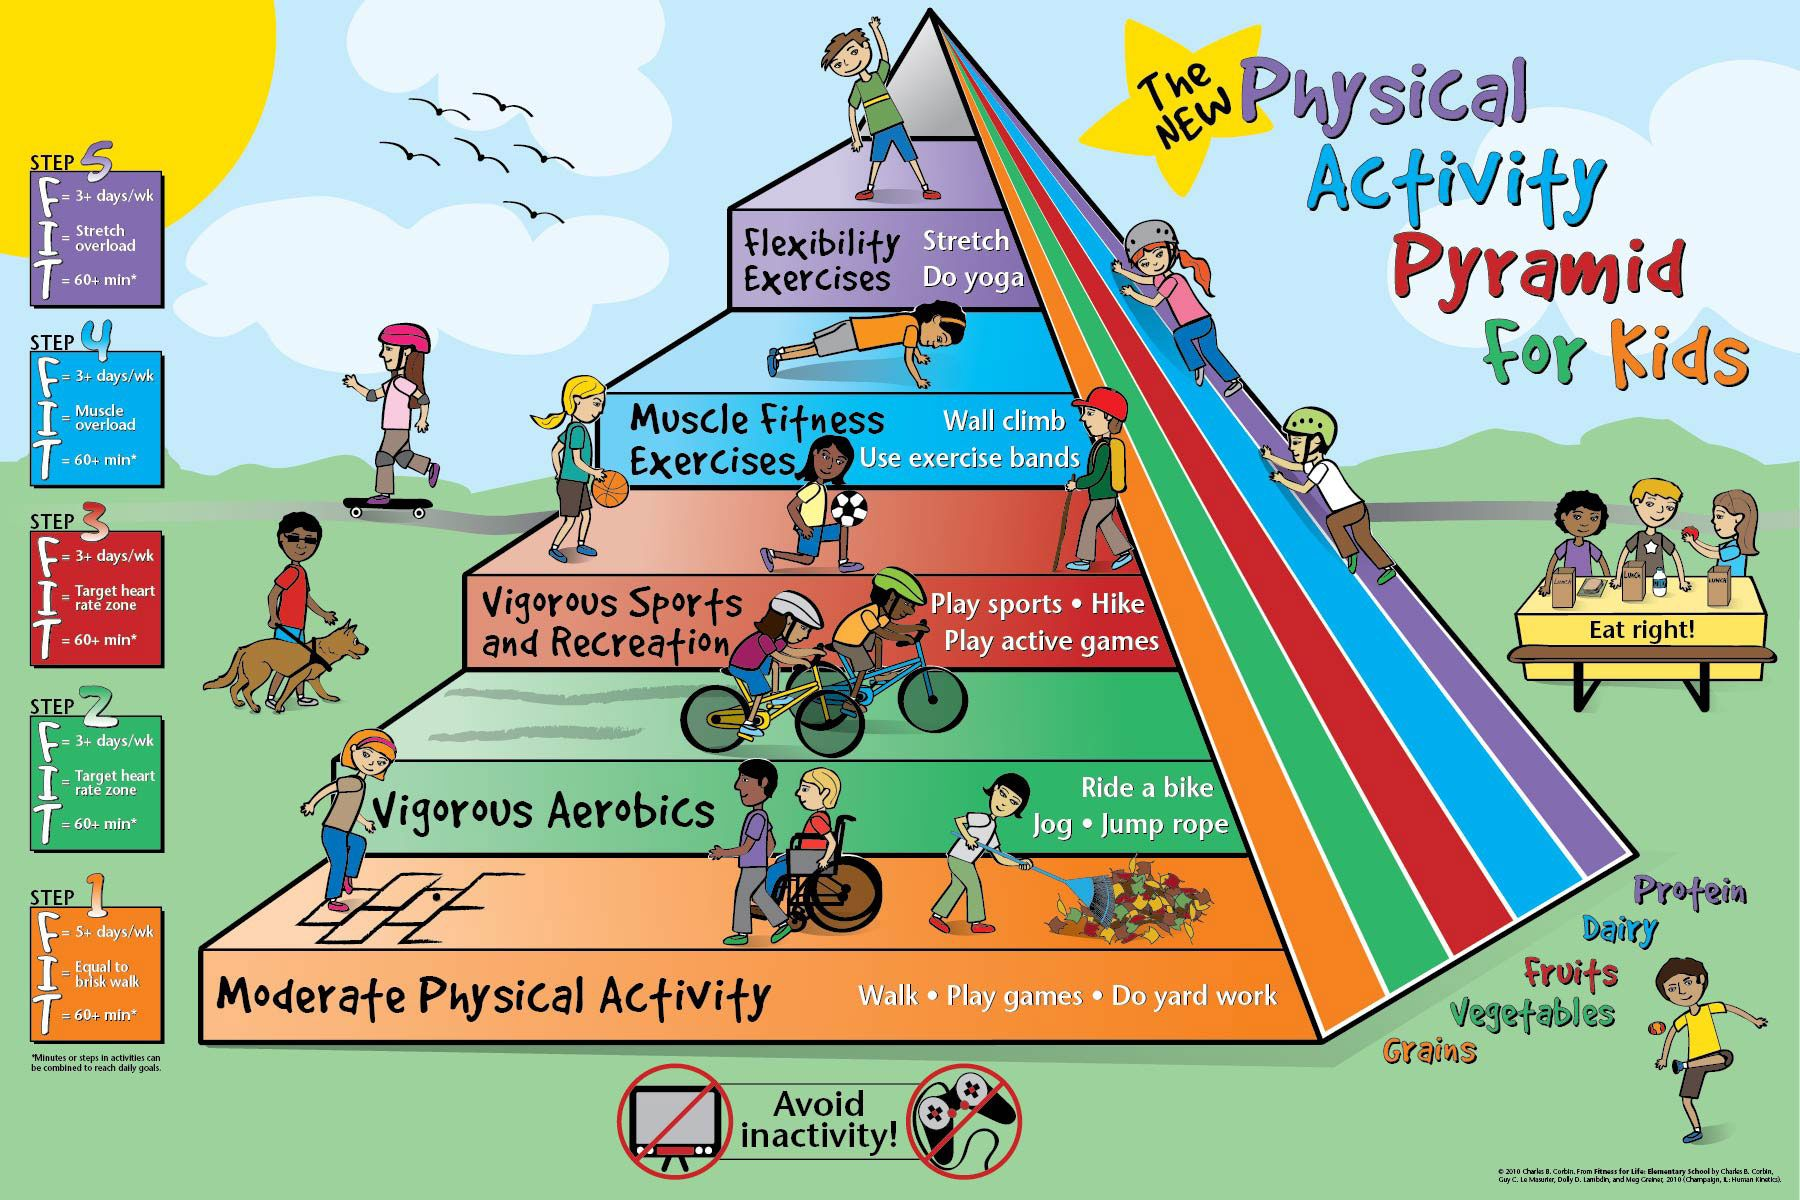 Physical Activity Pyramid For Kids Odpyramid